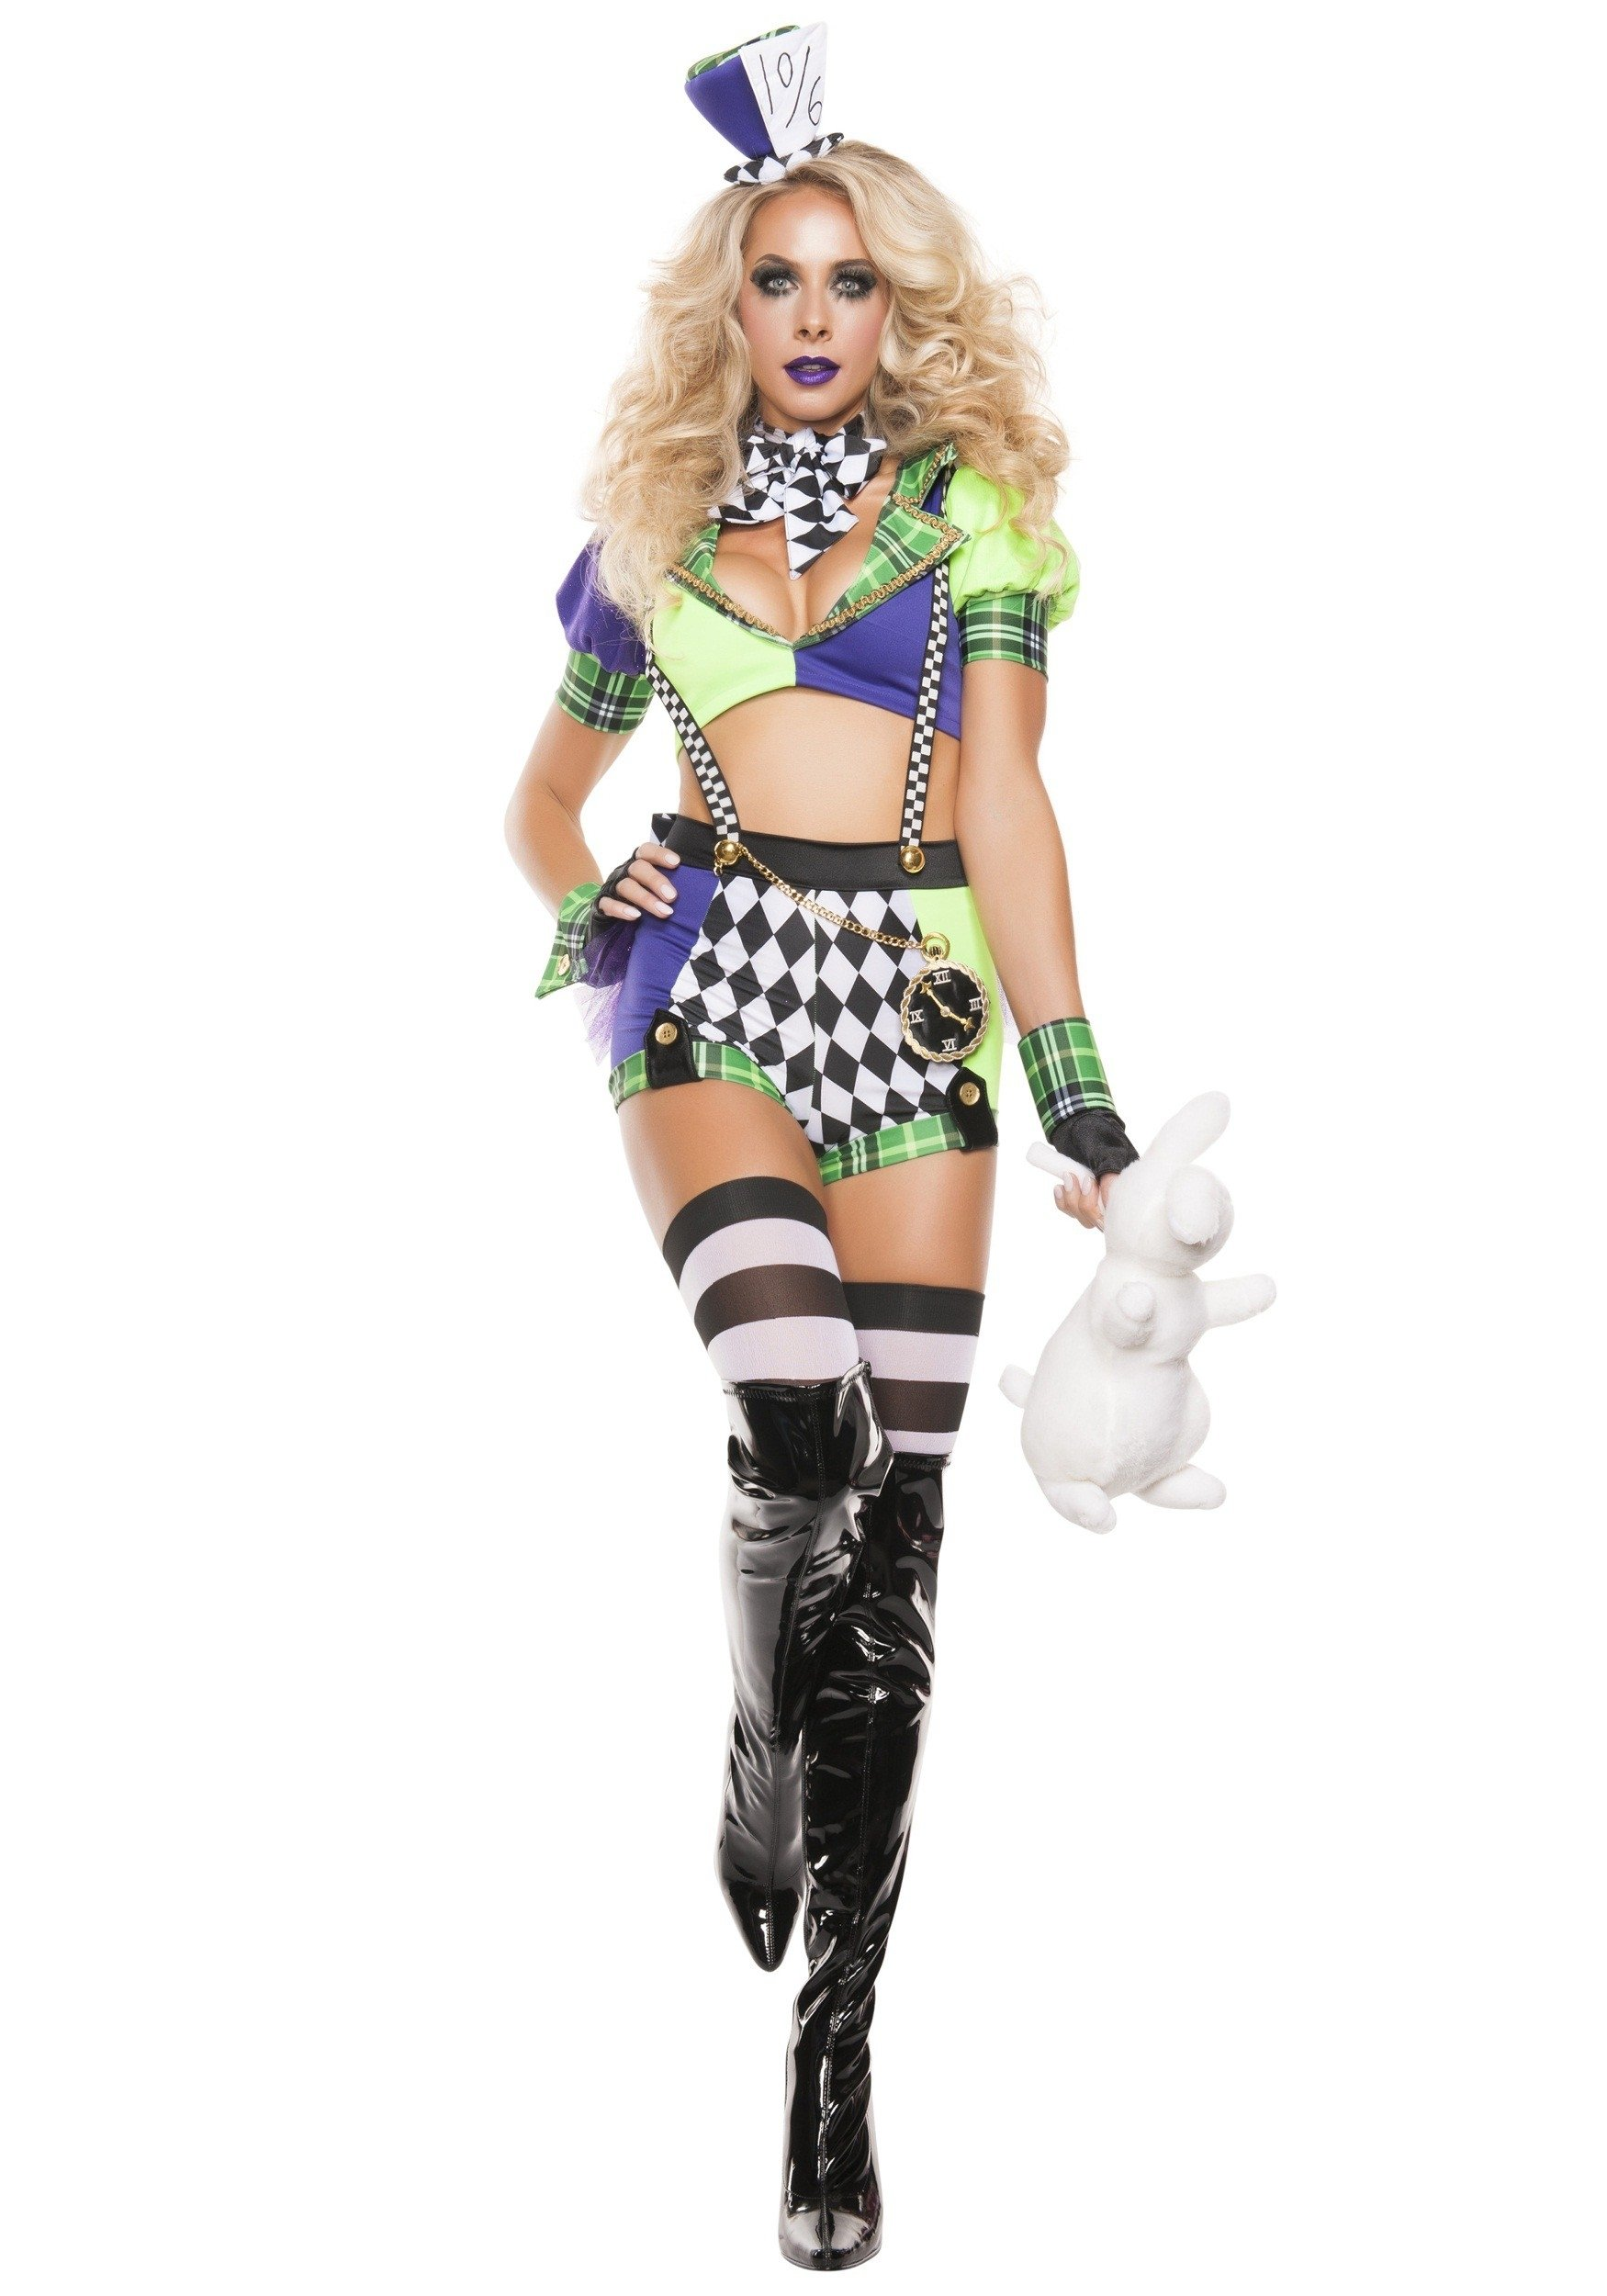 10 Perfect Female Mad Hatter Costume Ideas womens tipsy mad hatter costume 2020